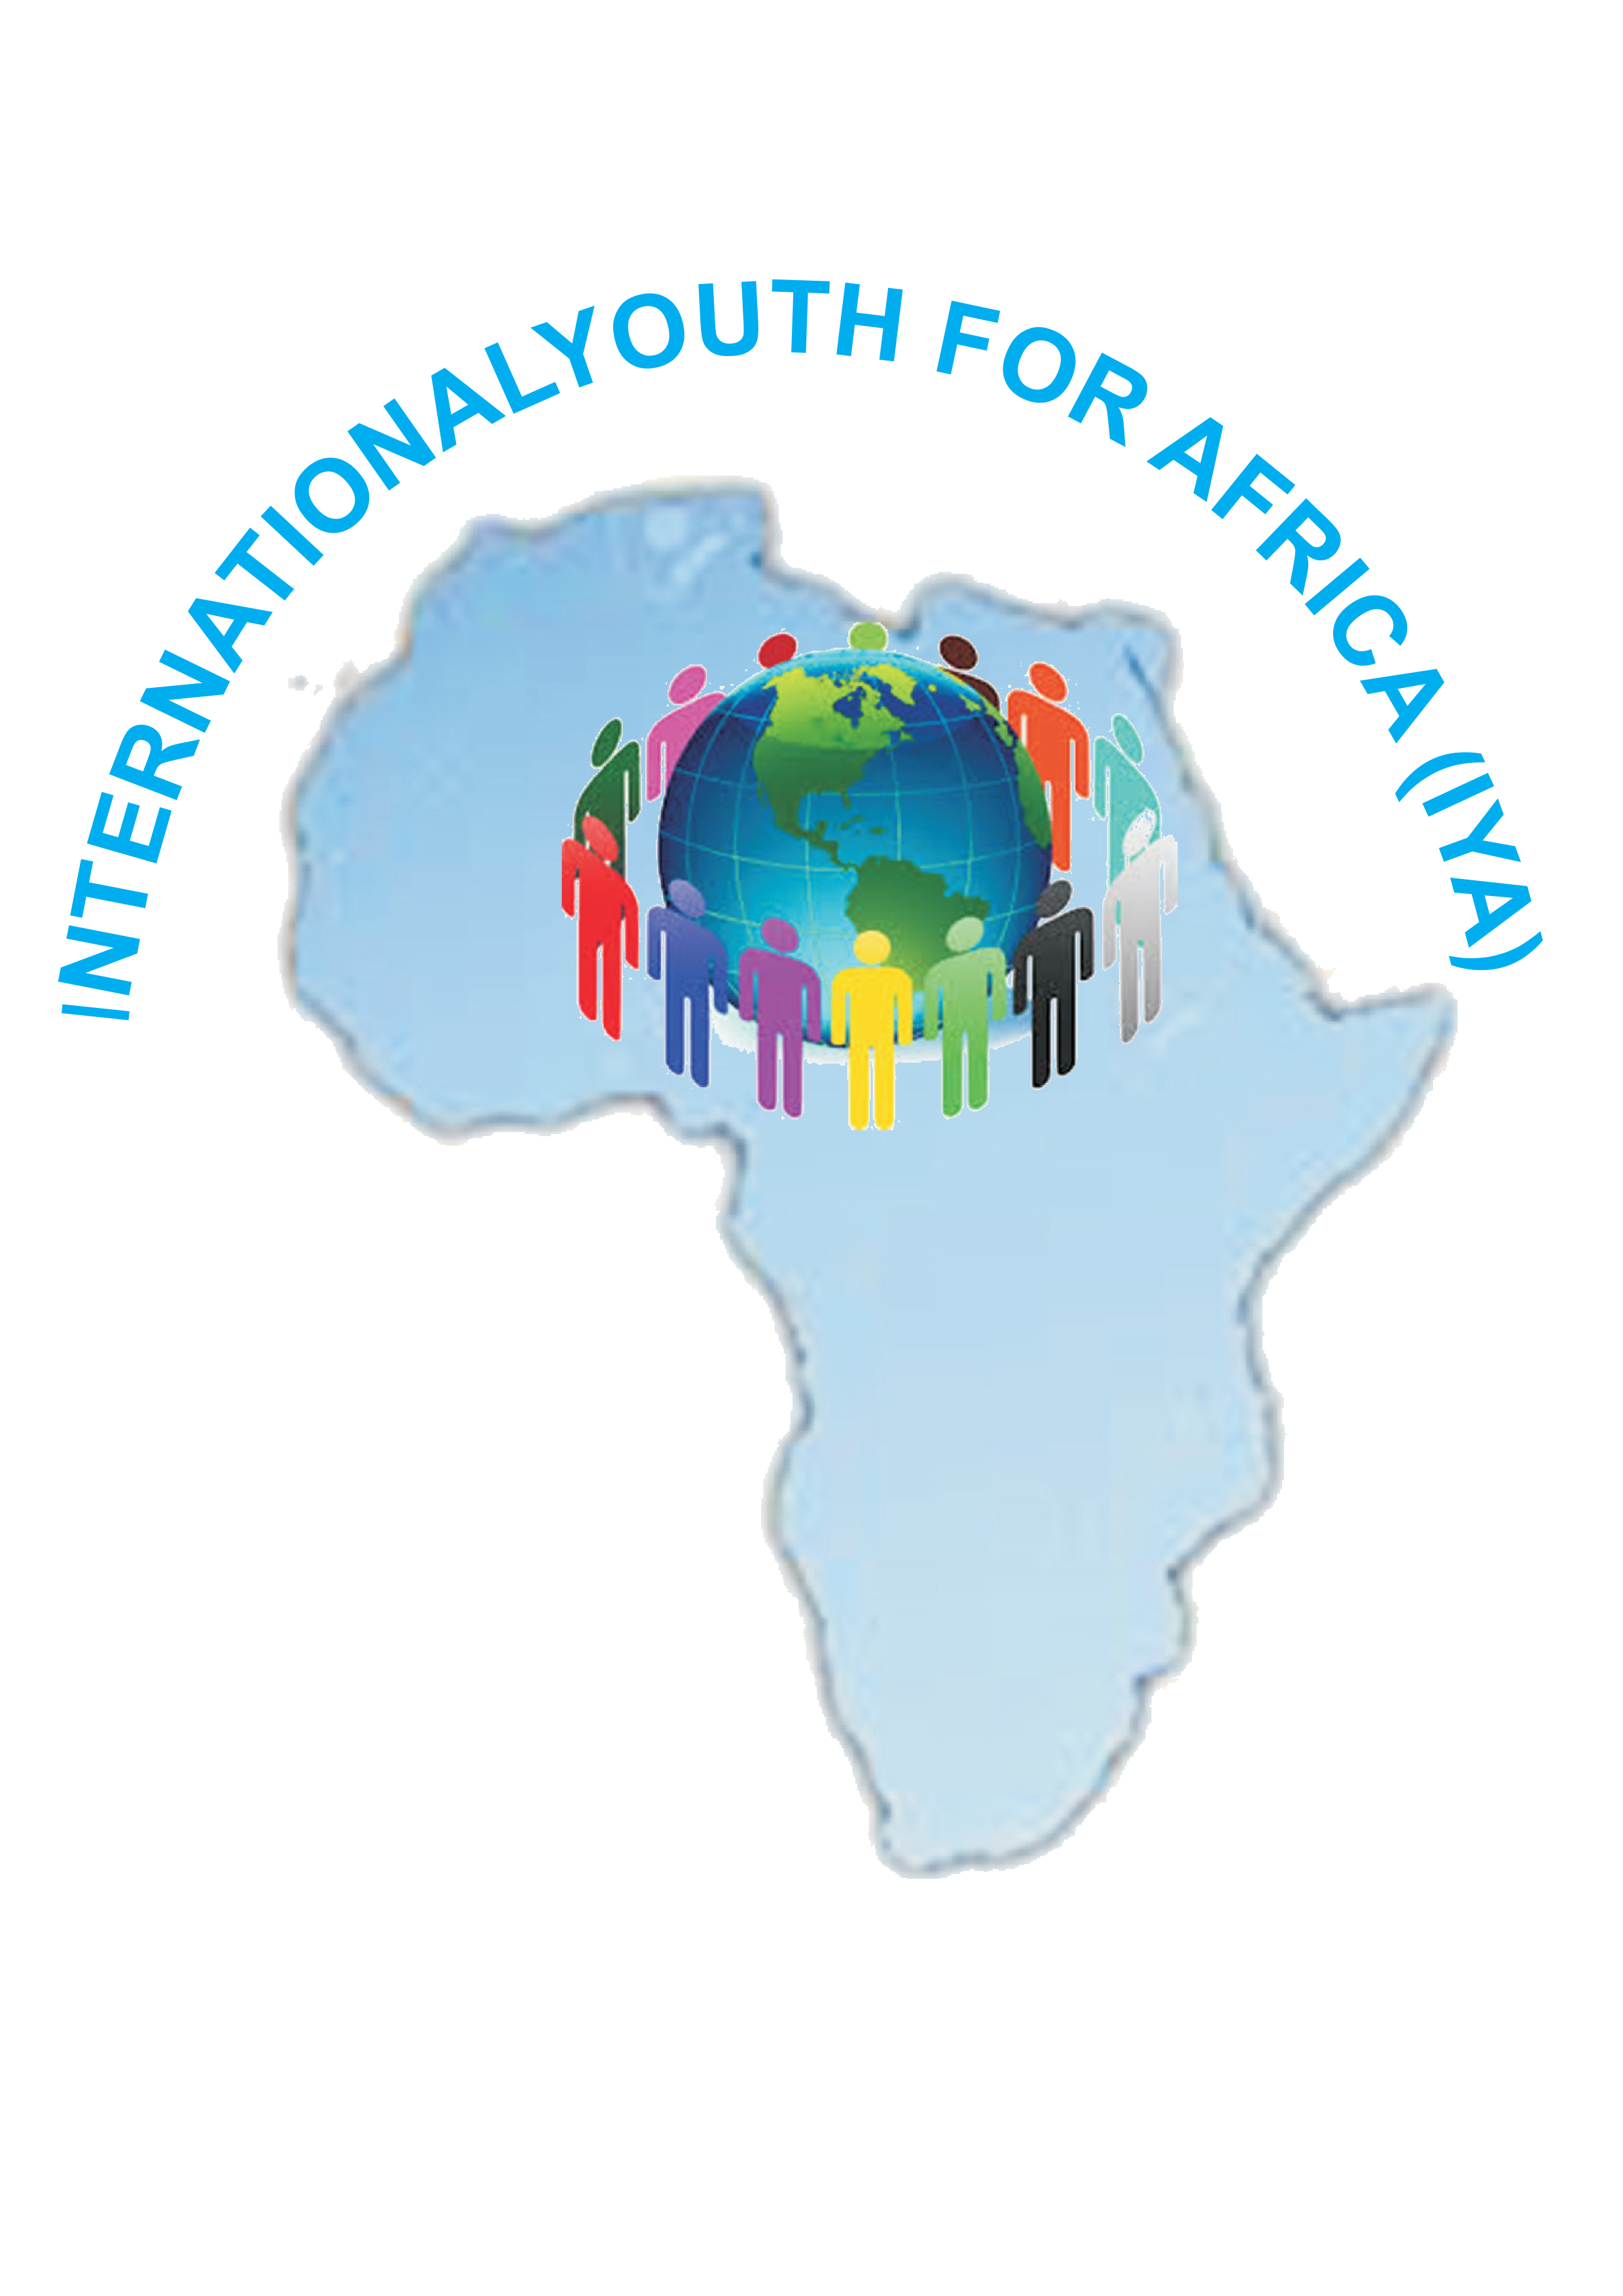 Youth Action Development Network is Changed to International Youth for Africa